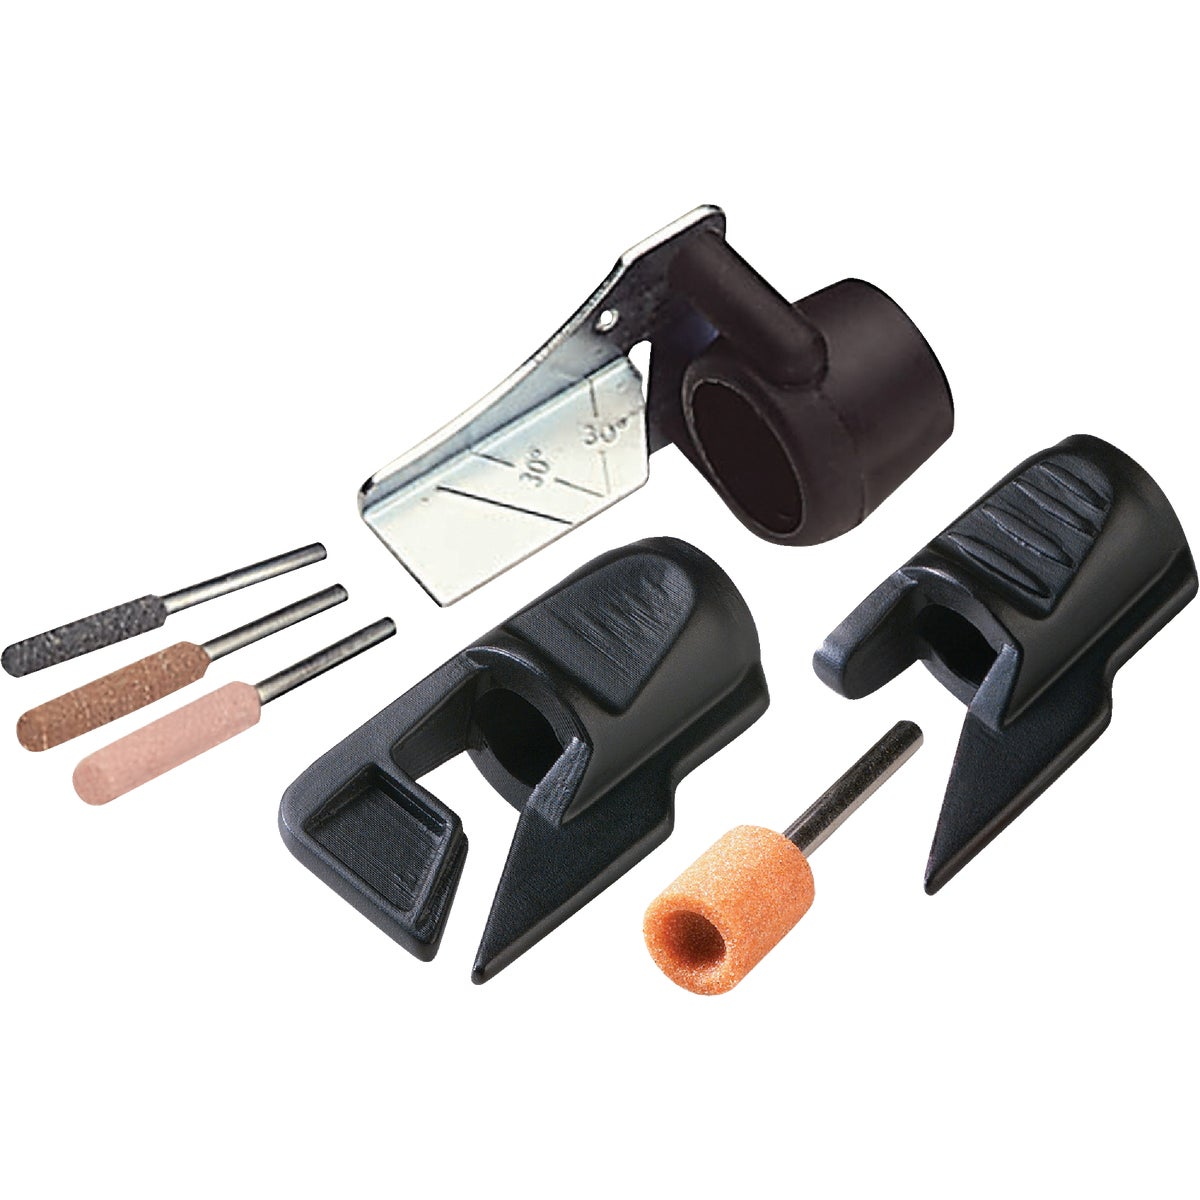 SHARPENING ATTACHMNT KIT - A679-02 by Dremel Mfg Co